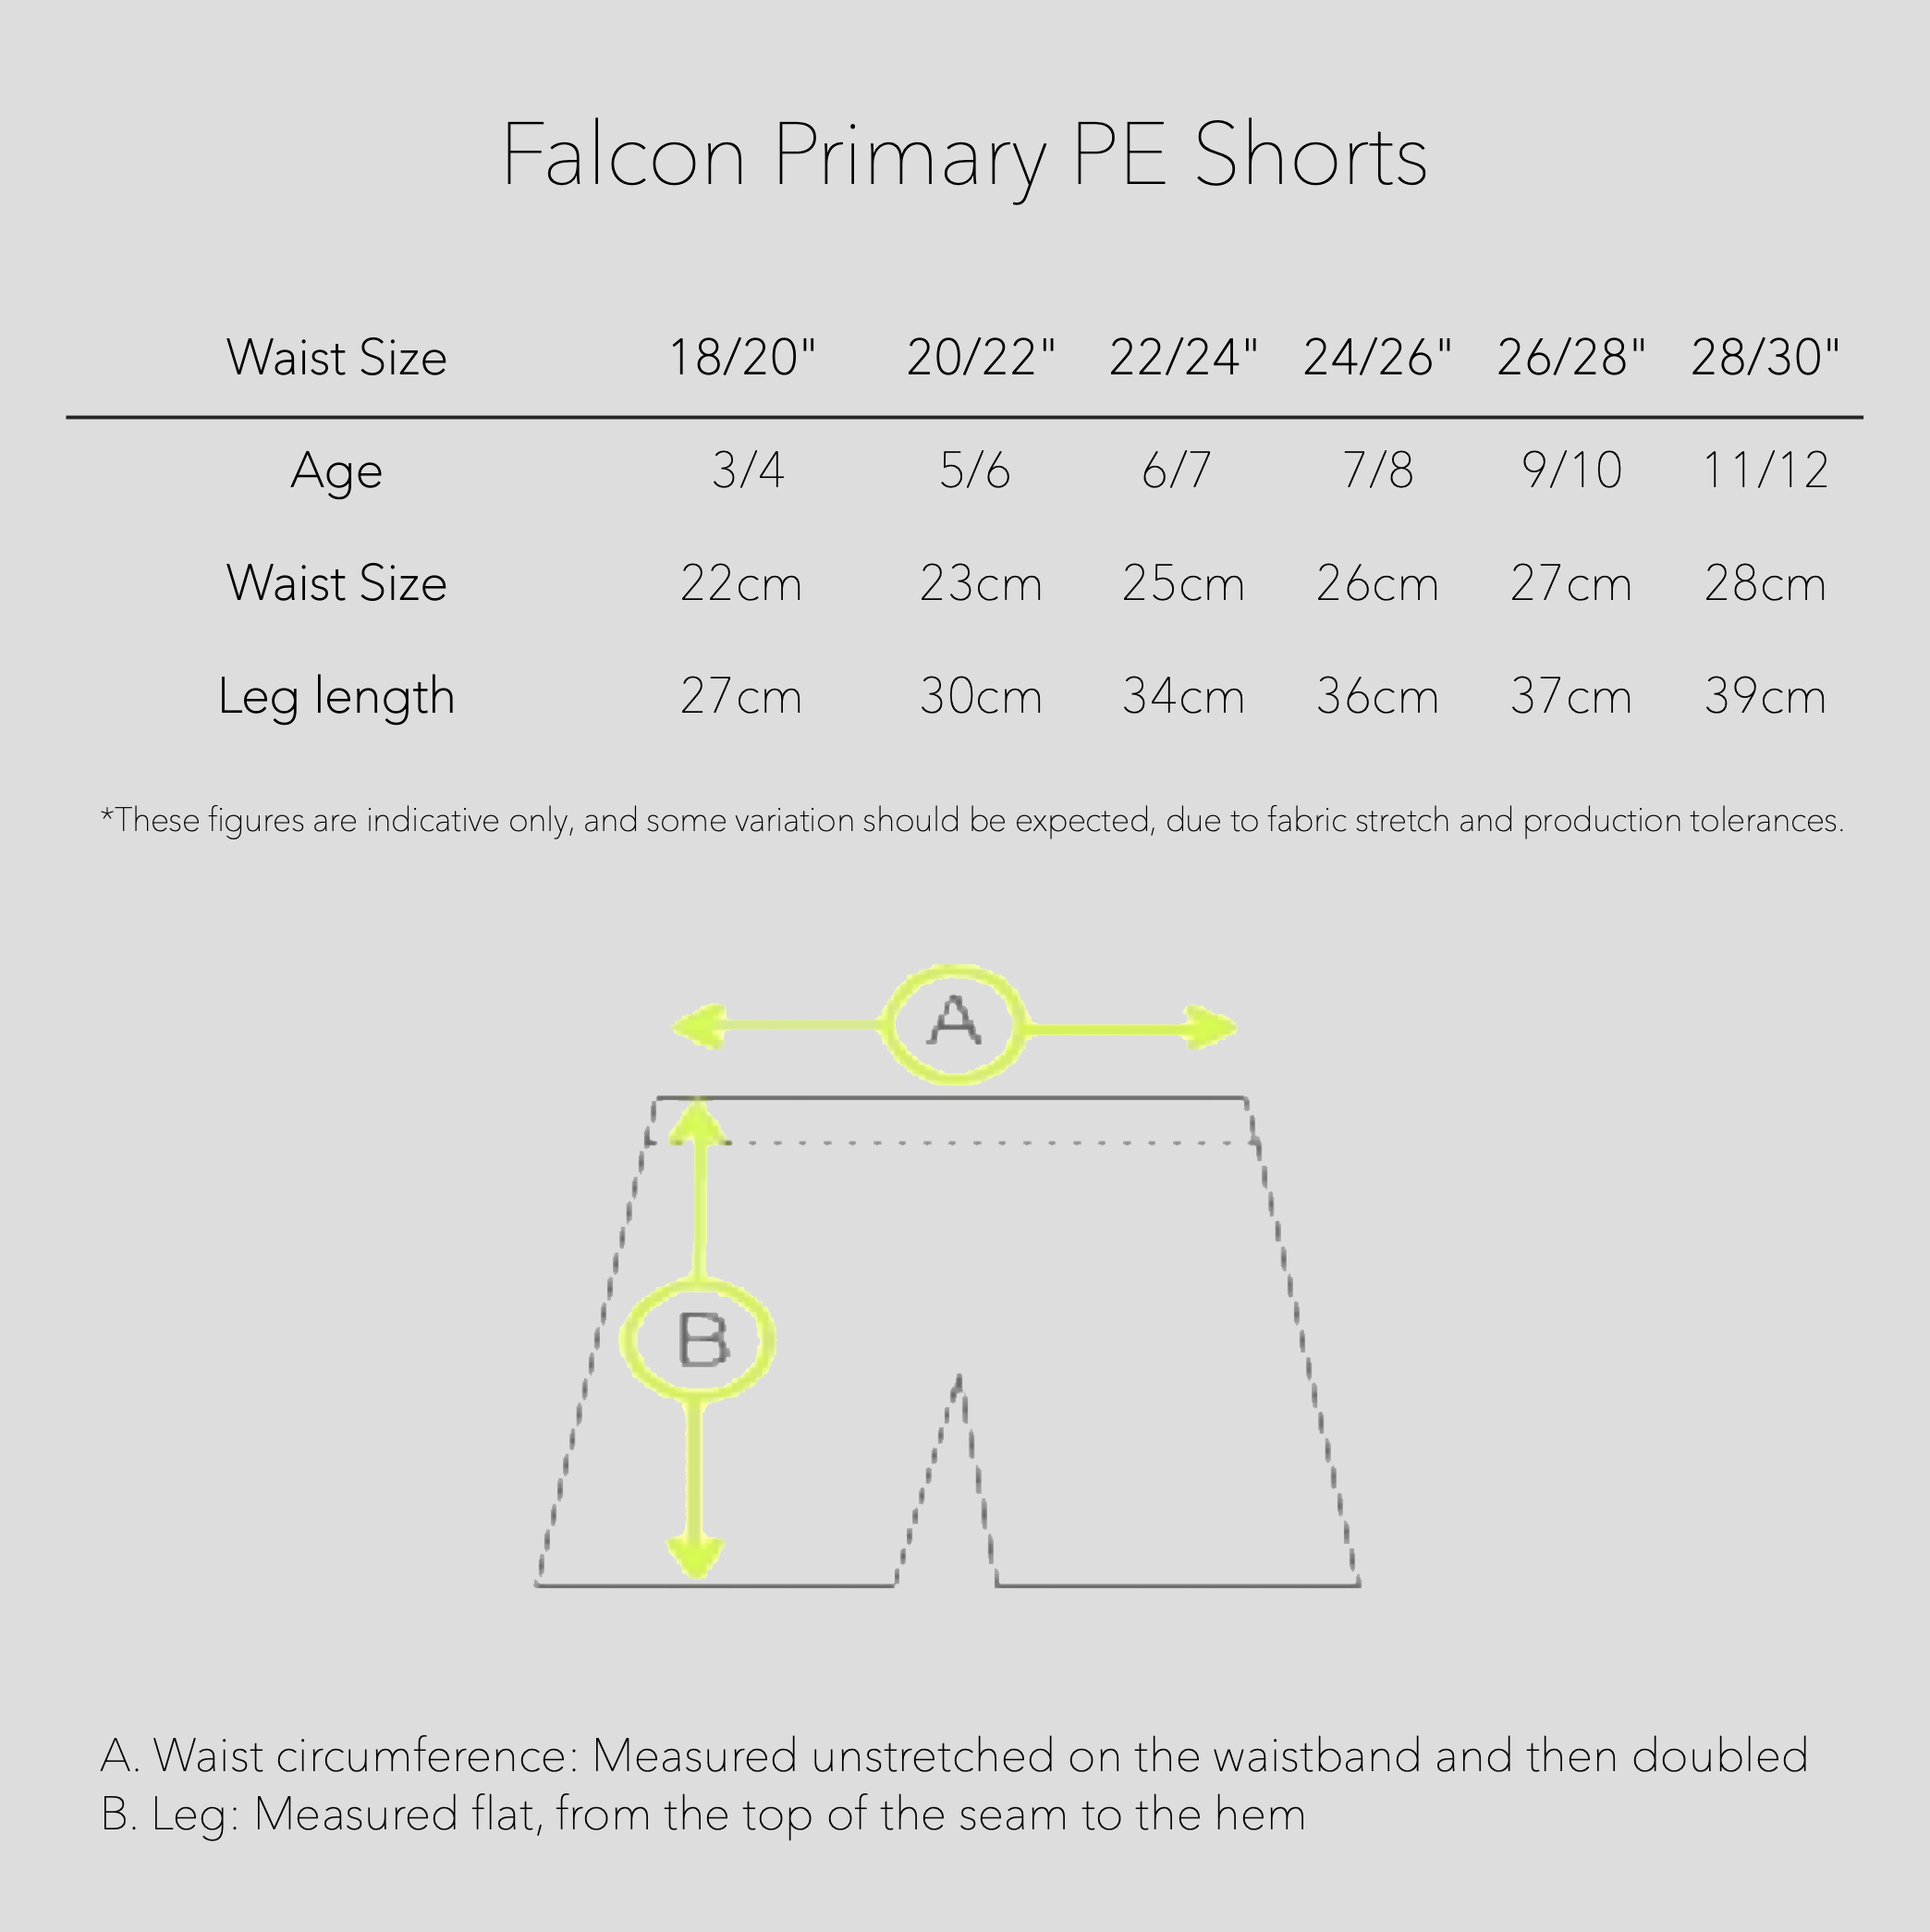 Black Falcon Primary PE Shorts